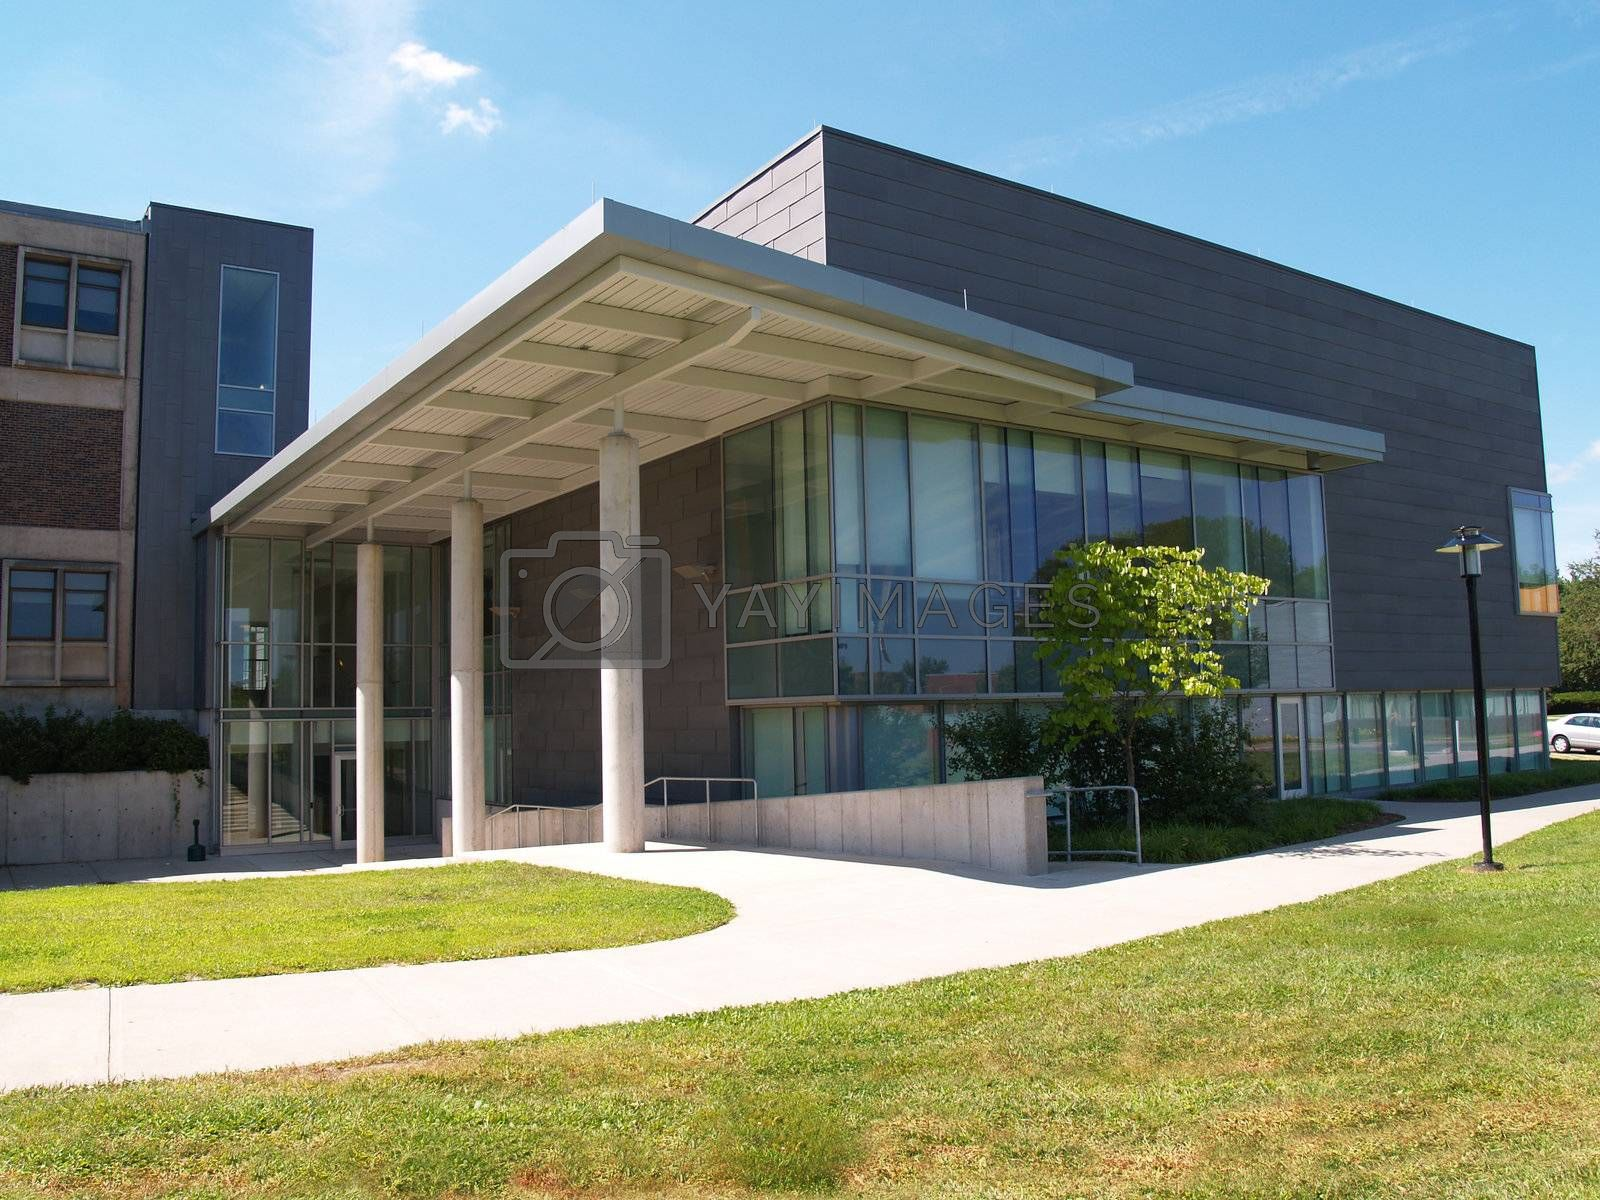 ISET Complex on the campus of the University of Hartford in West Hartford, Connecticut